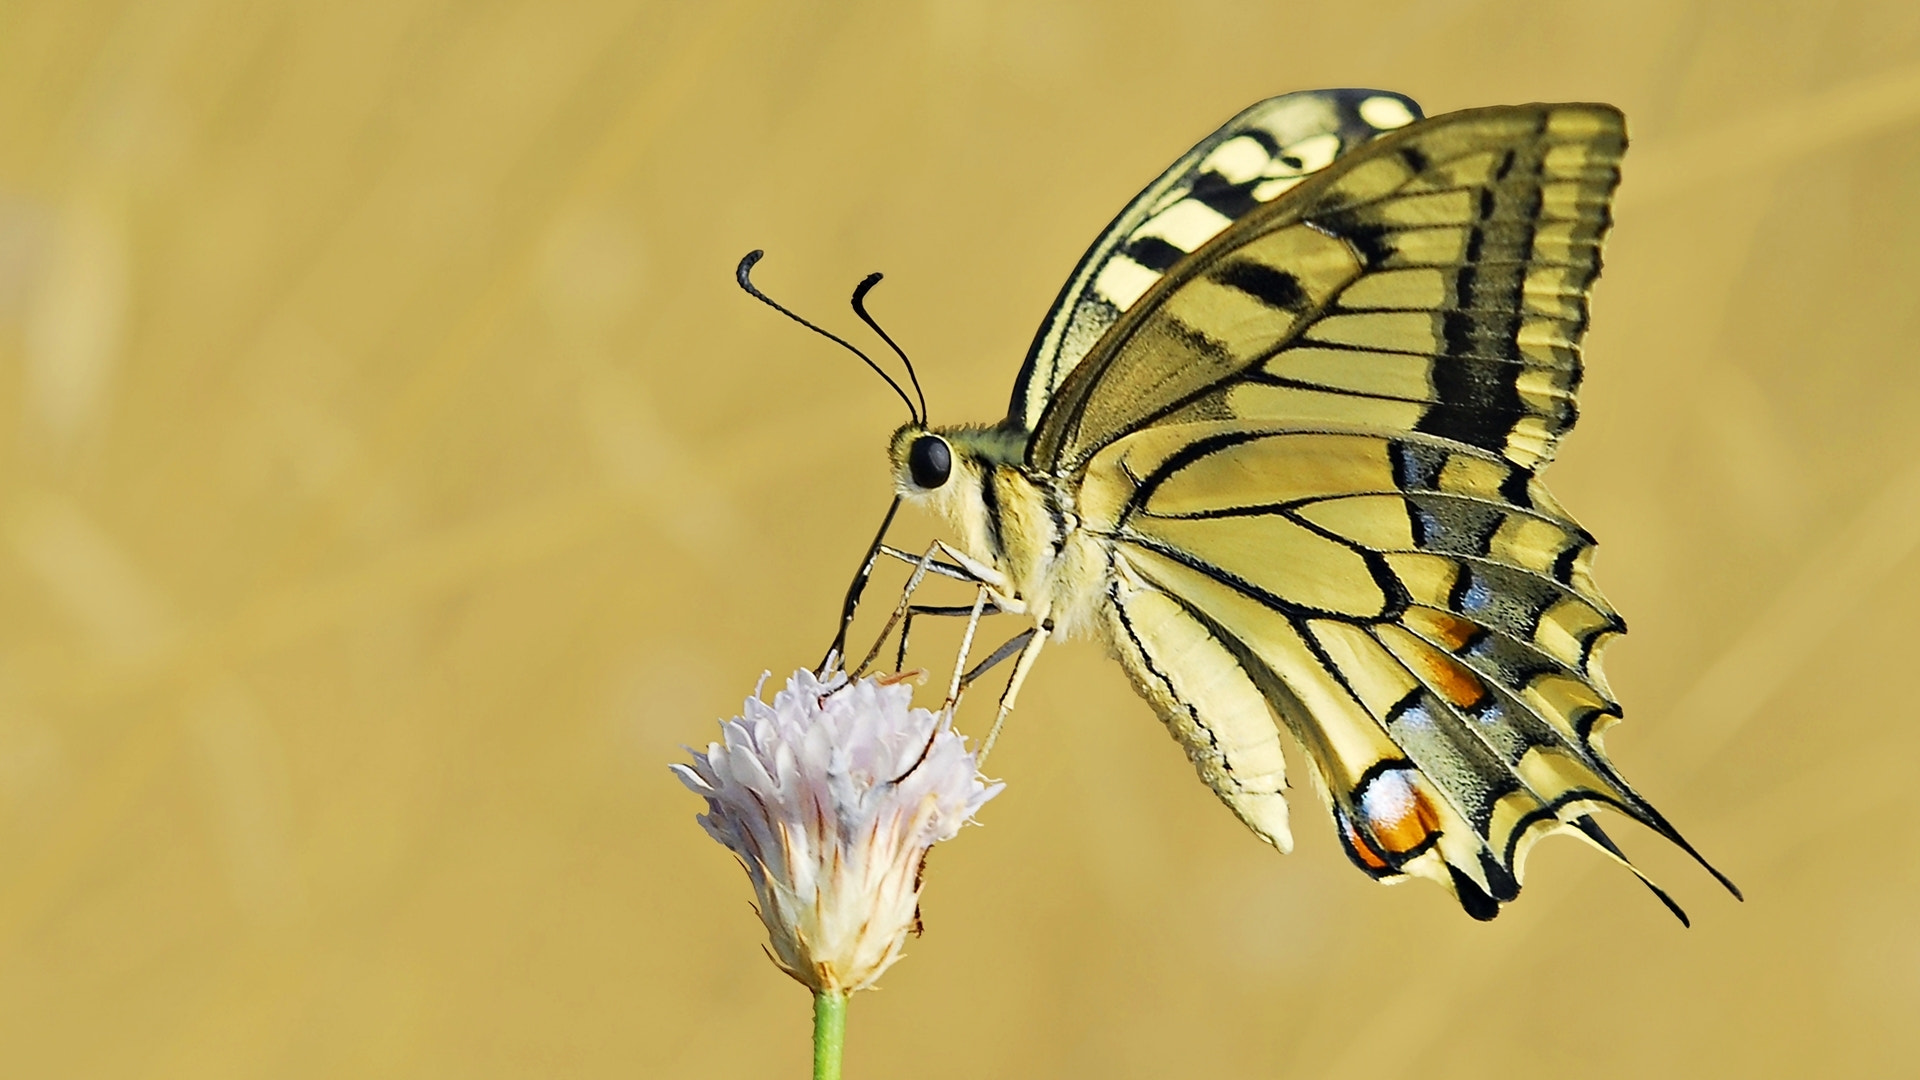 Photograph Papilio machaon by ilker kursun on 500px